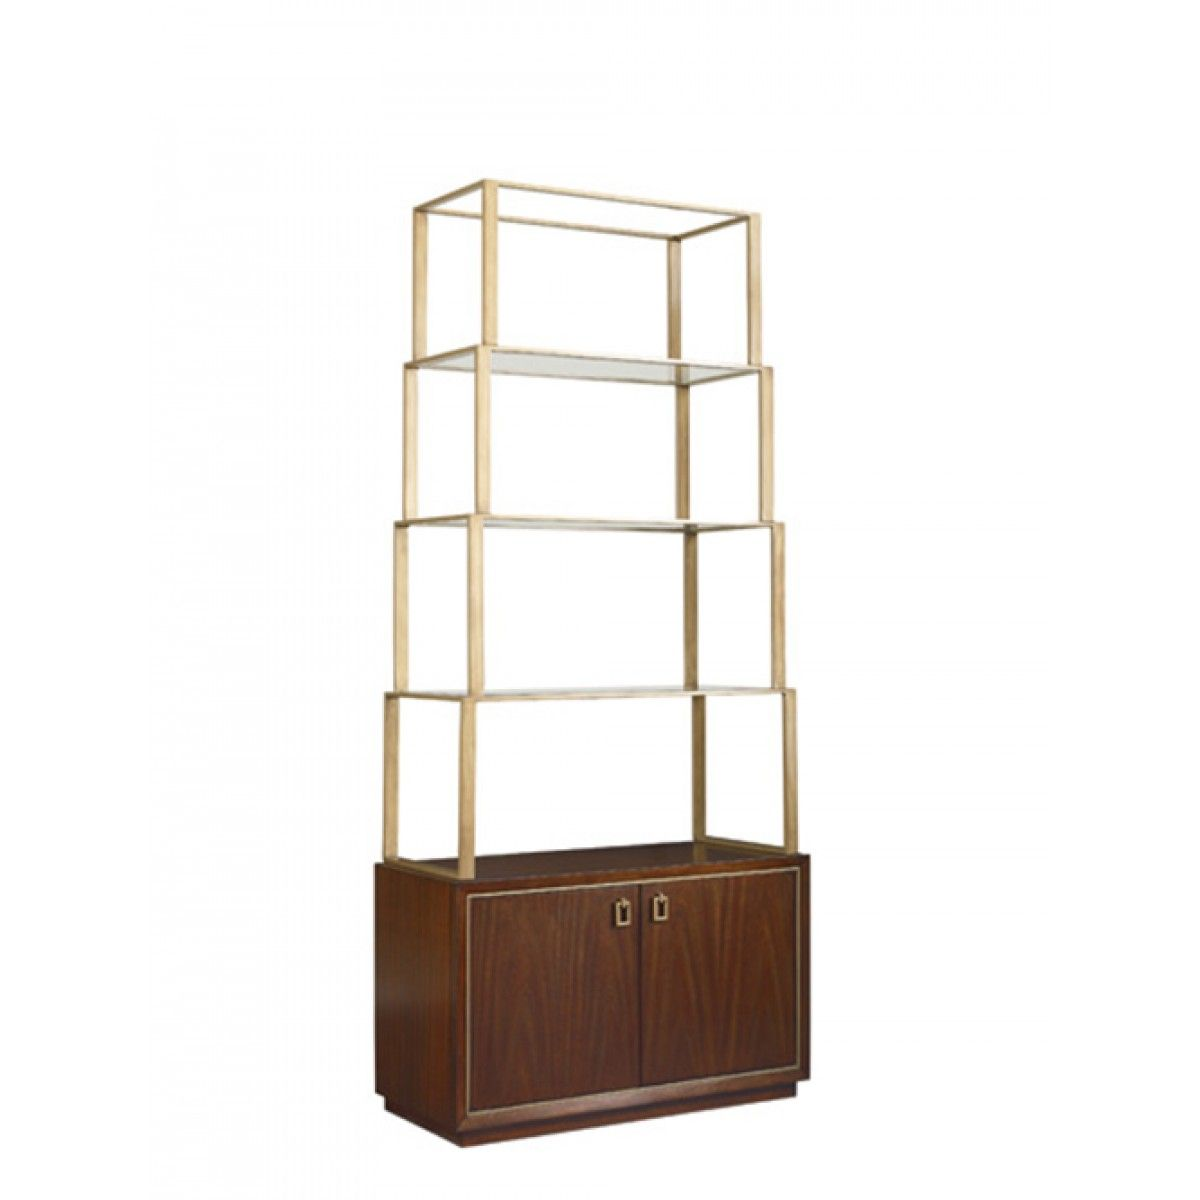 Superior Thomasville Modern Artefacts Tang Etagere. Designer RugsDiscount Furniture